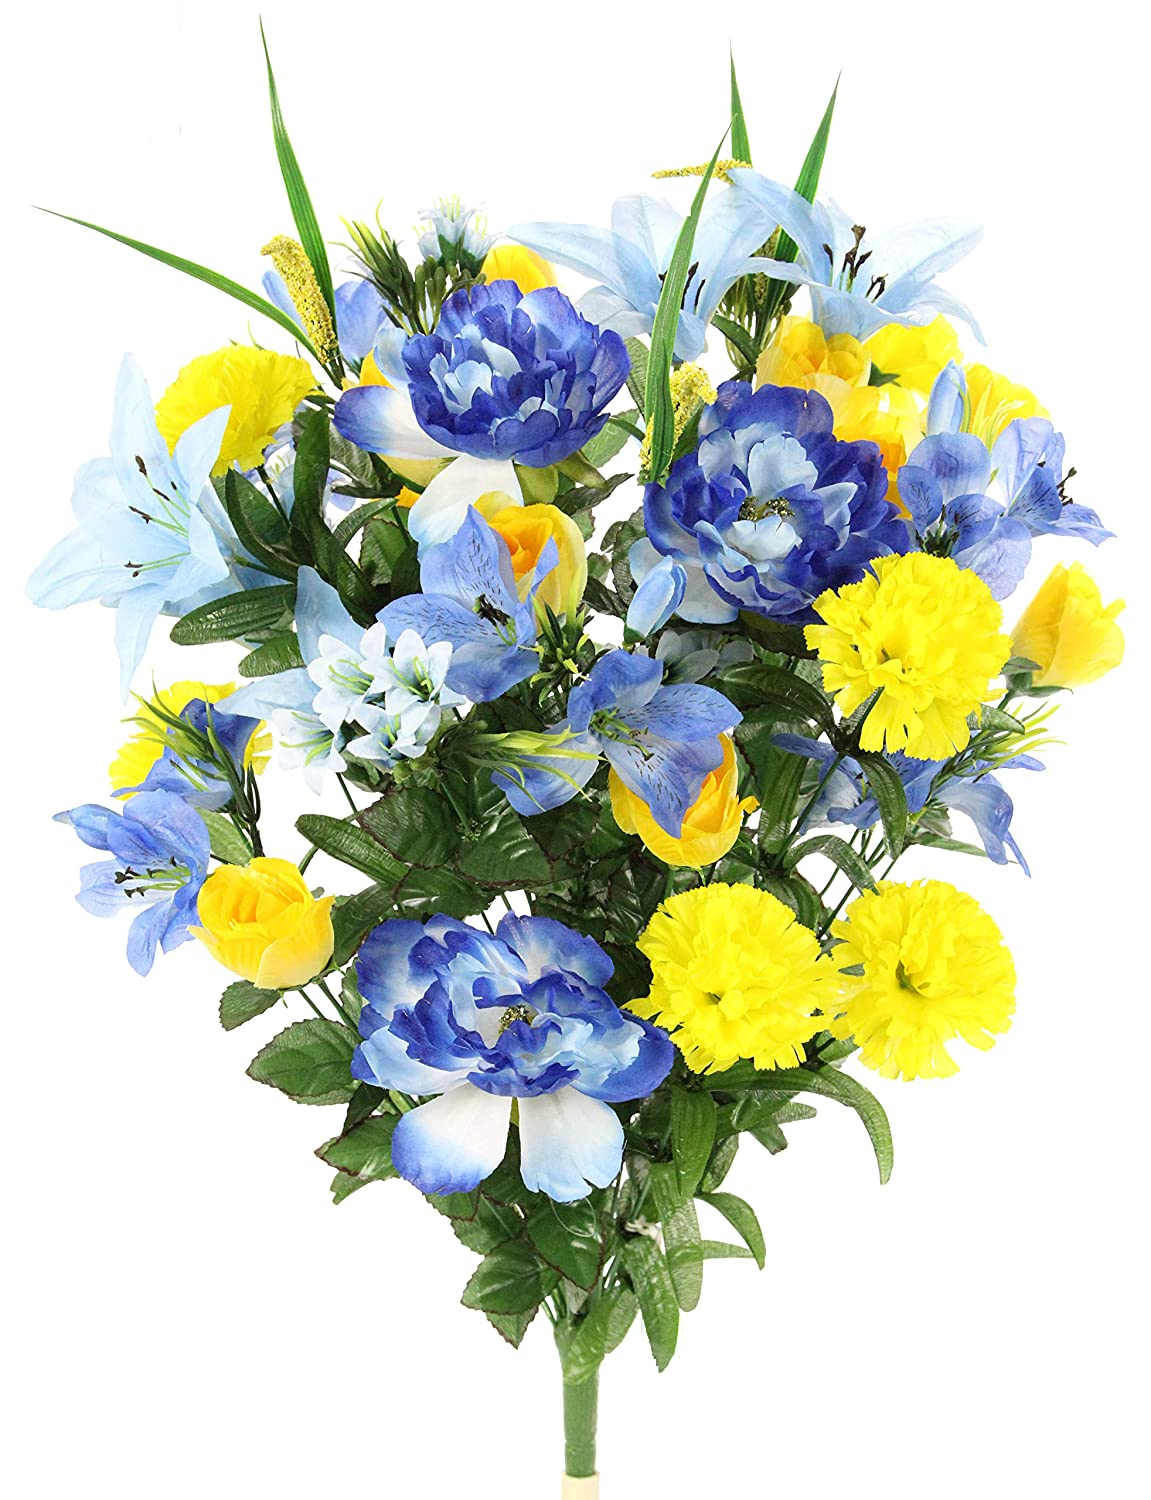 Admired By Nature ABN1B001-BL/YW 40 Stems Artificial Full Blooming Lily, Rose Bud, Carnation and Mum with Greenery Mixed Flower Bush, Blue/Yellow, BL/YW